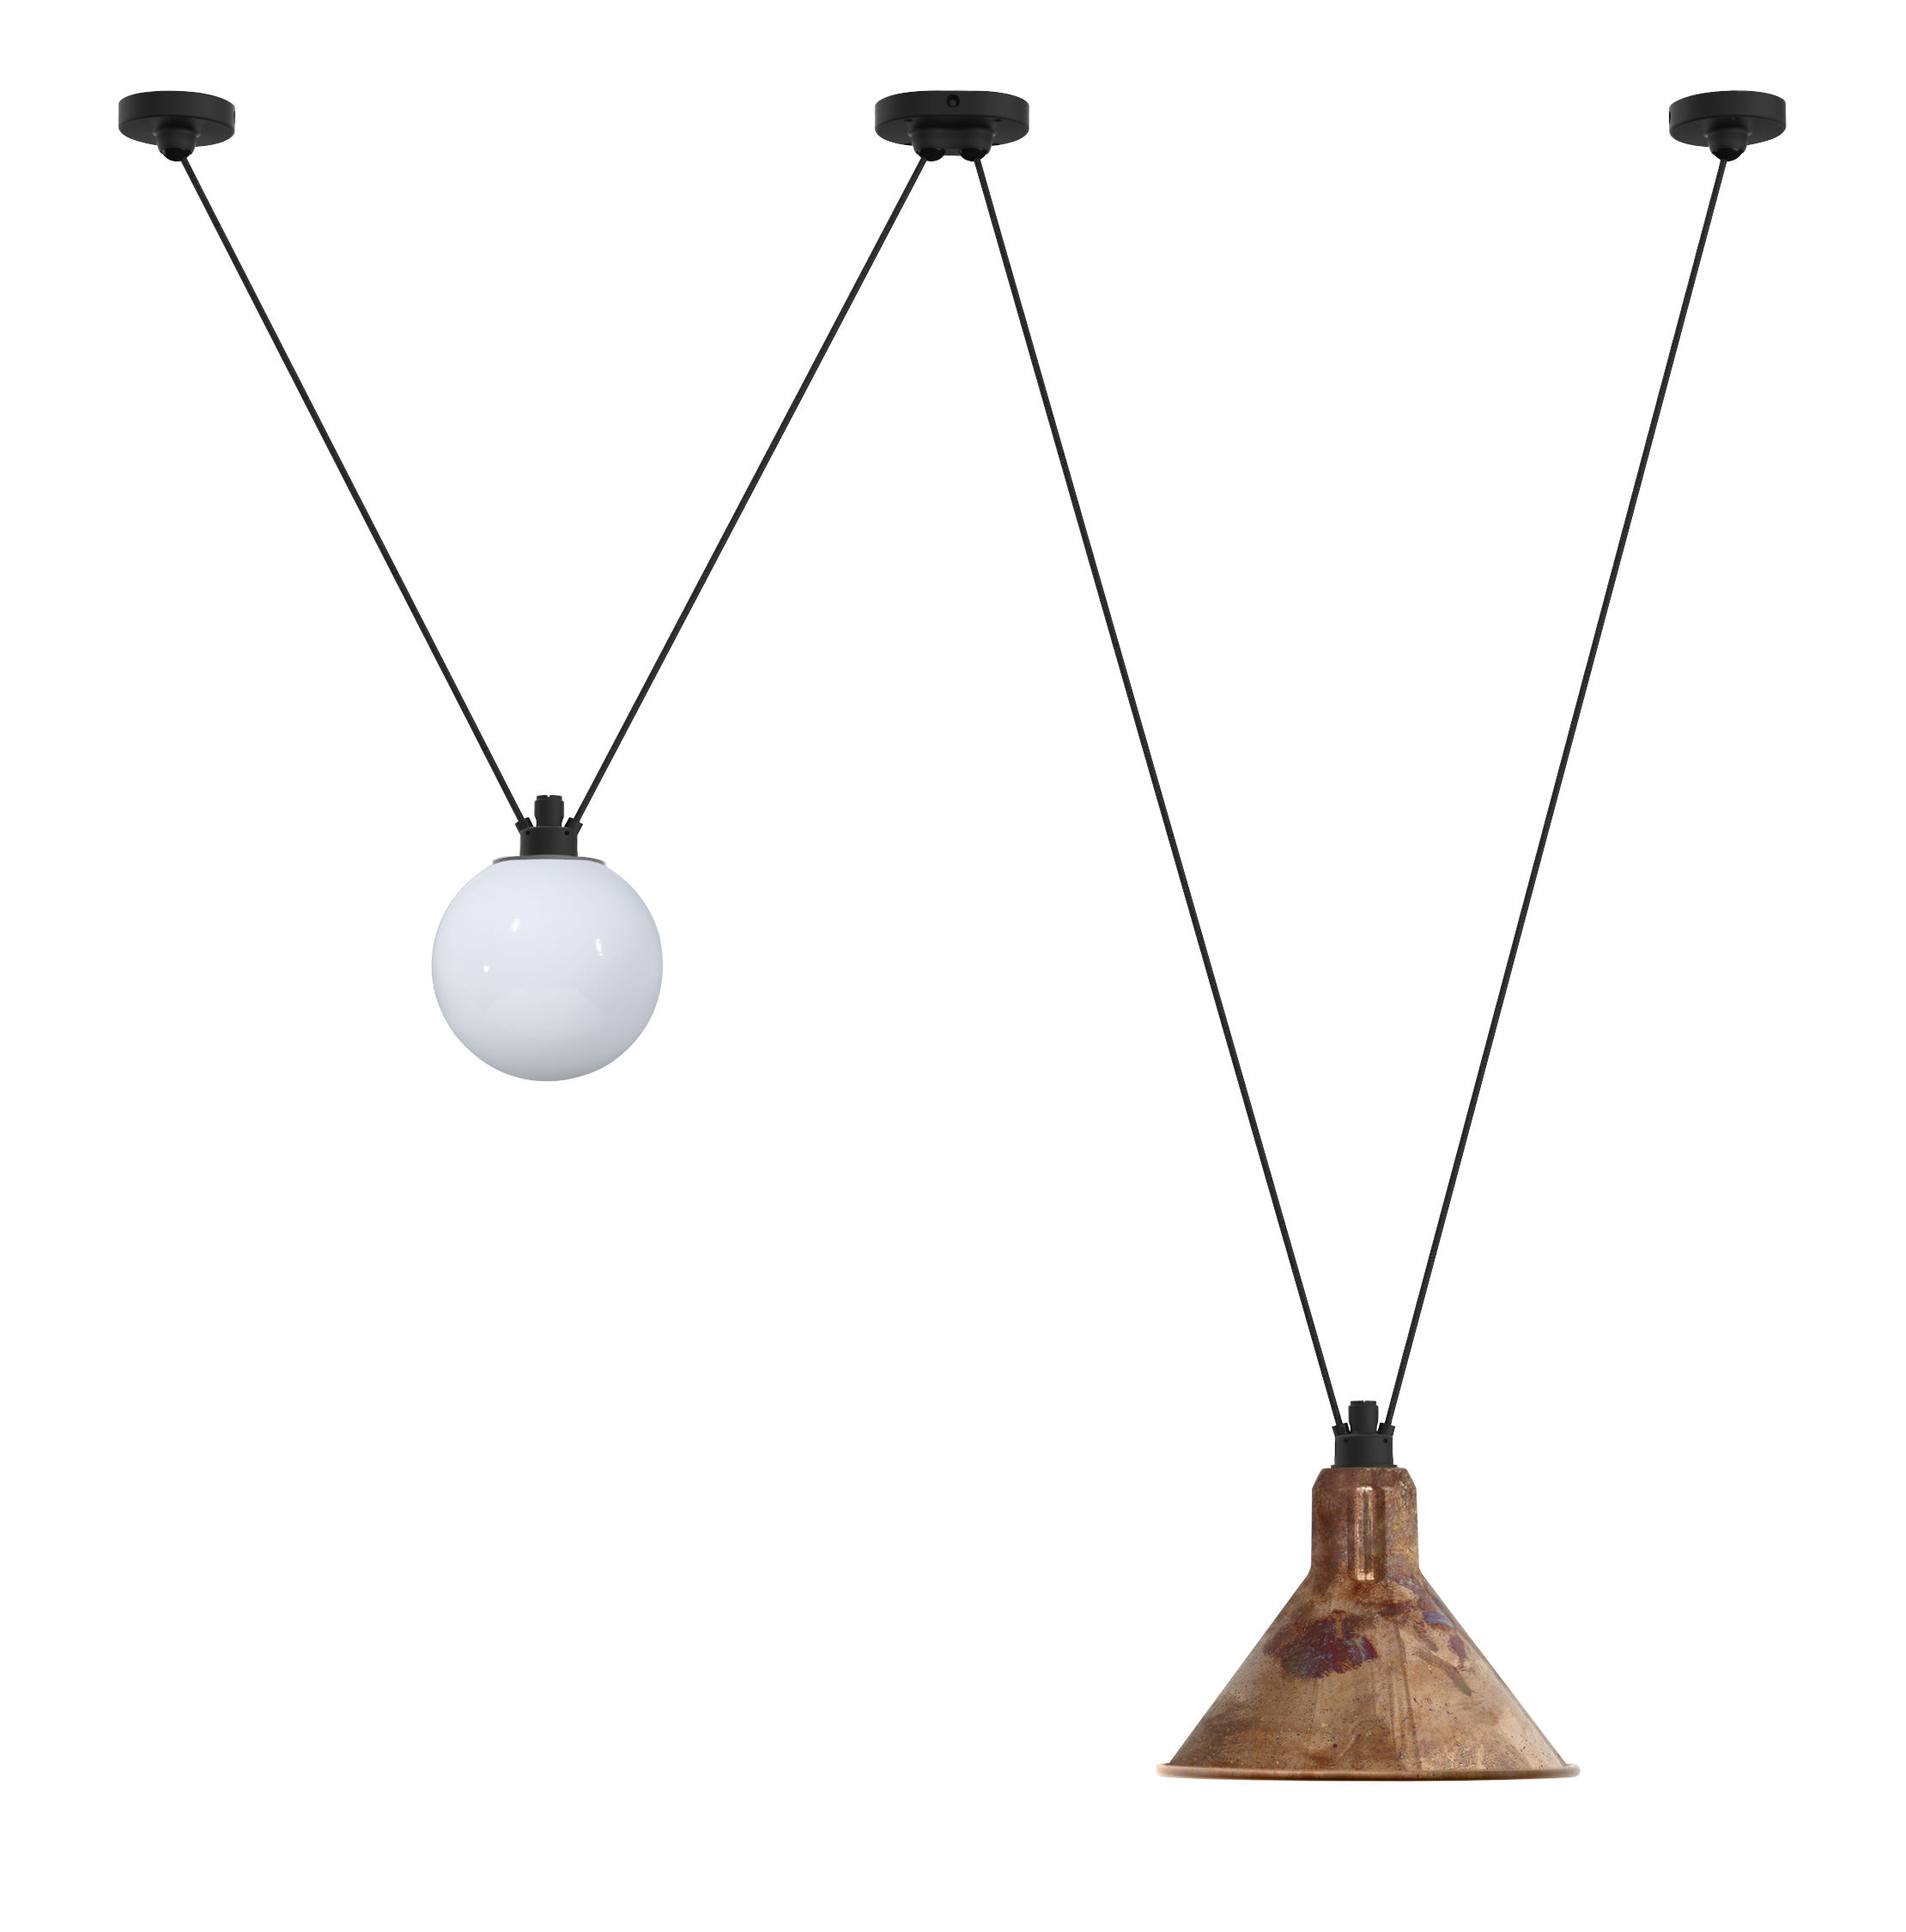 Lighting - Pendant Lighting - Acrobate N°324 Pendant - / Lampes Gras - 2 metal & glass shades by DCW éditions - Raw copper / White glass - Glass, Painted steel